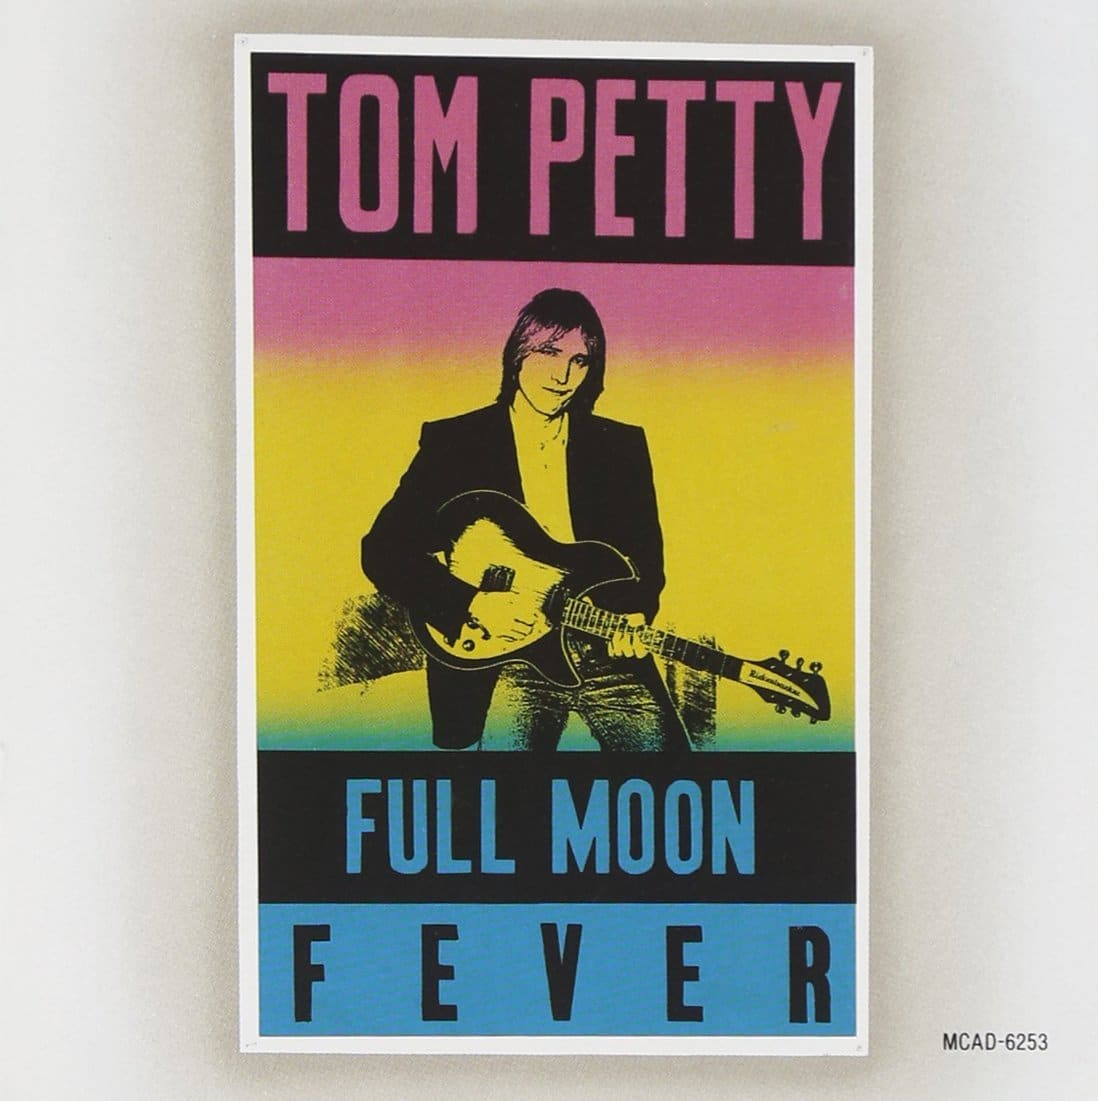 tom petty free fallin american songwriter